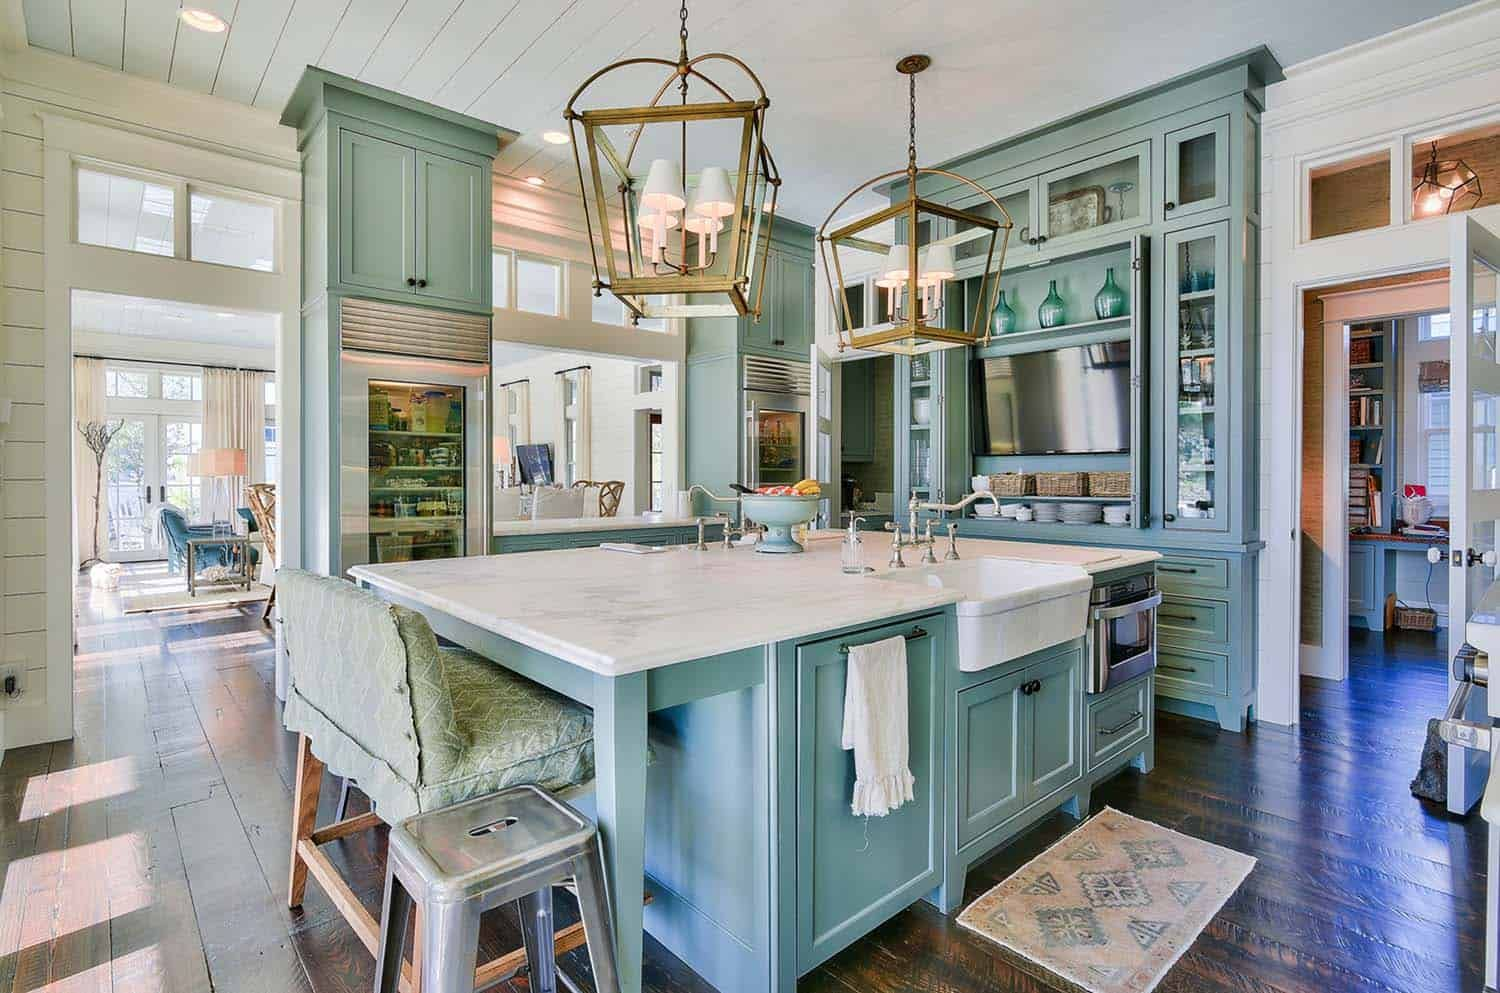 Delightful Lakefront Cottage With Inviting Interiors In Watercolor Beach House Interior Design Beach House Interior Luxury Beach House